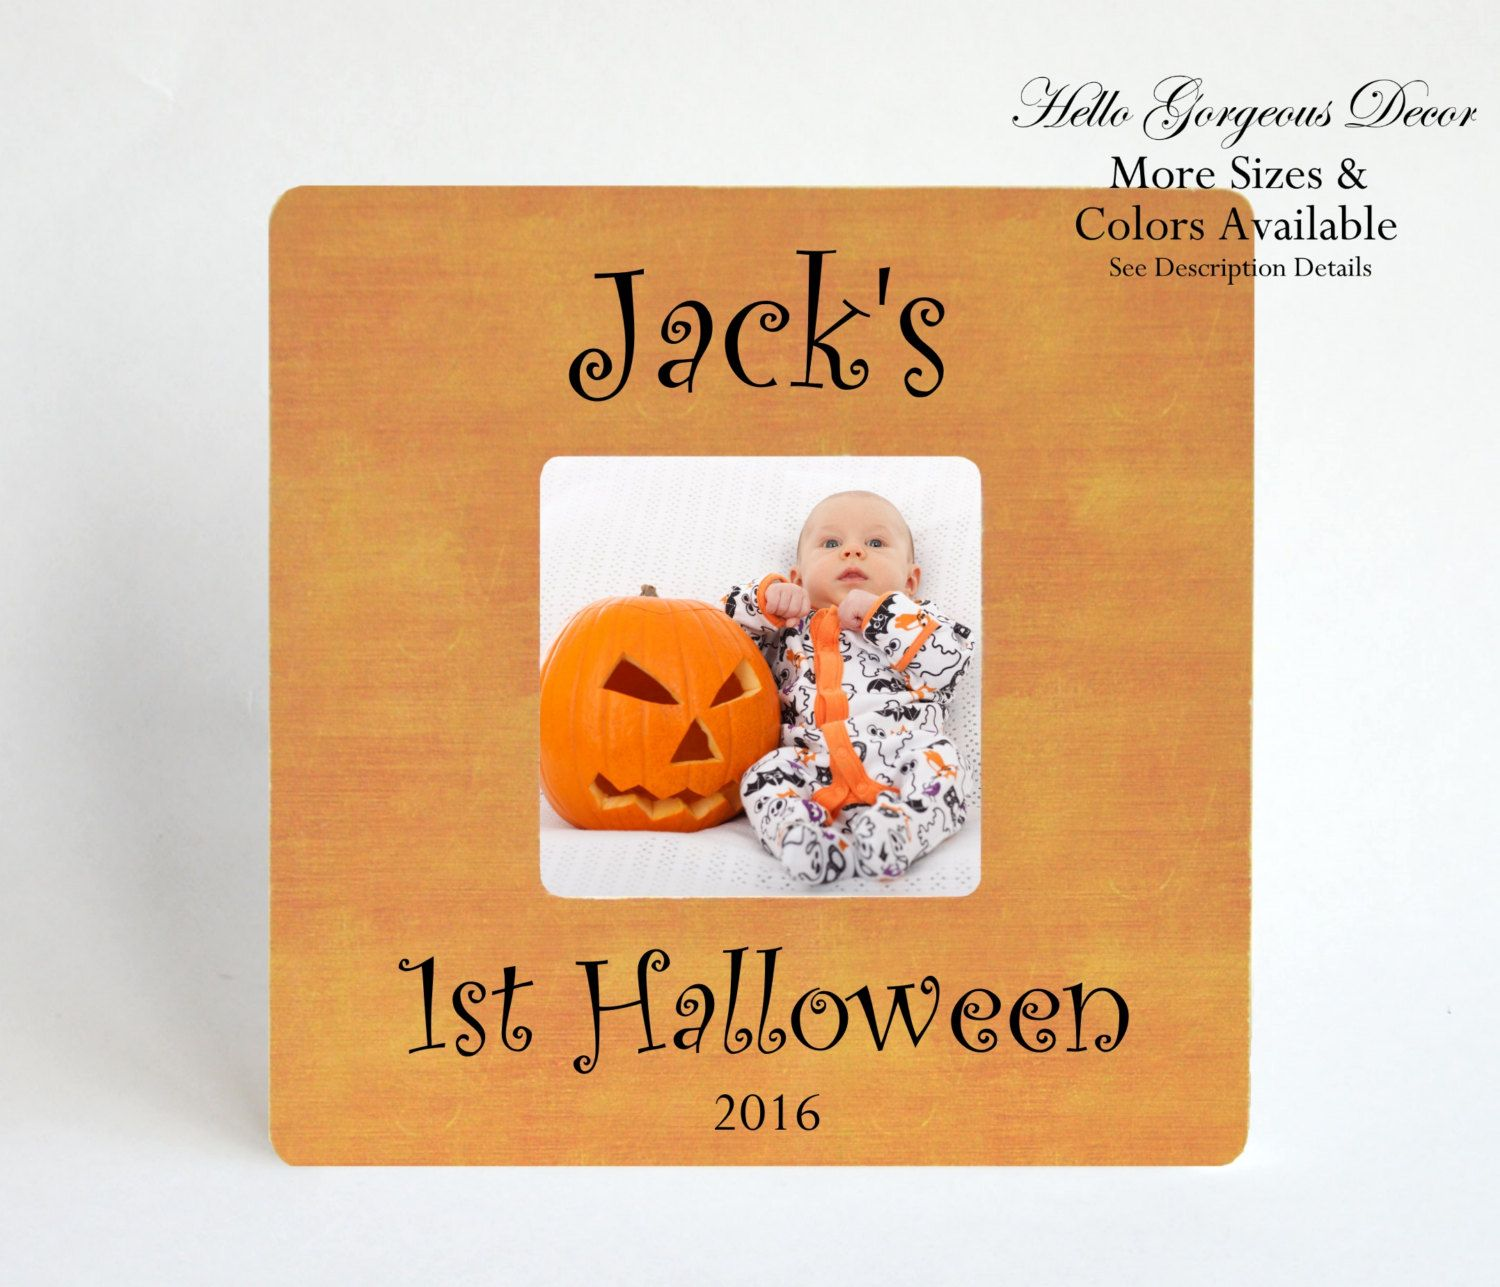 first halloween baby picture frame gift new baby personalized halloween decor decorations newborn fall baby gift - Personalized Halloween Decorations